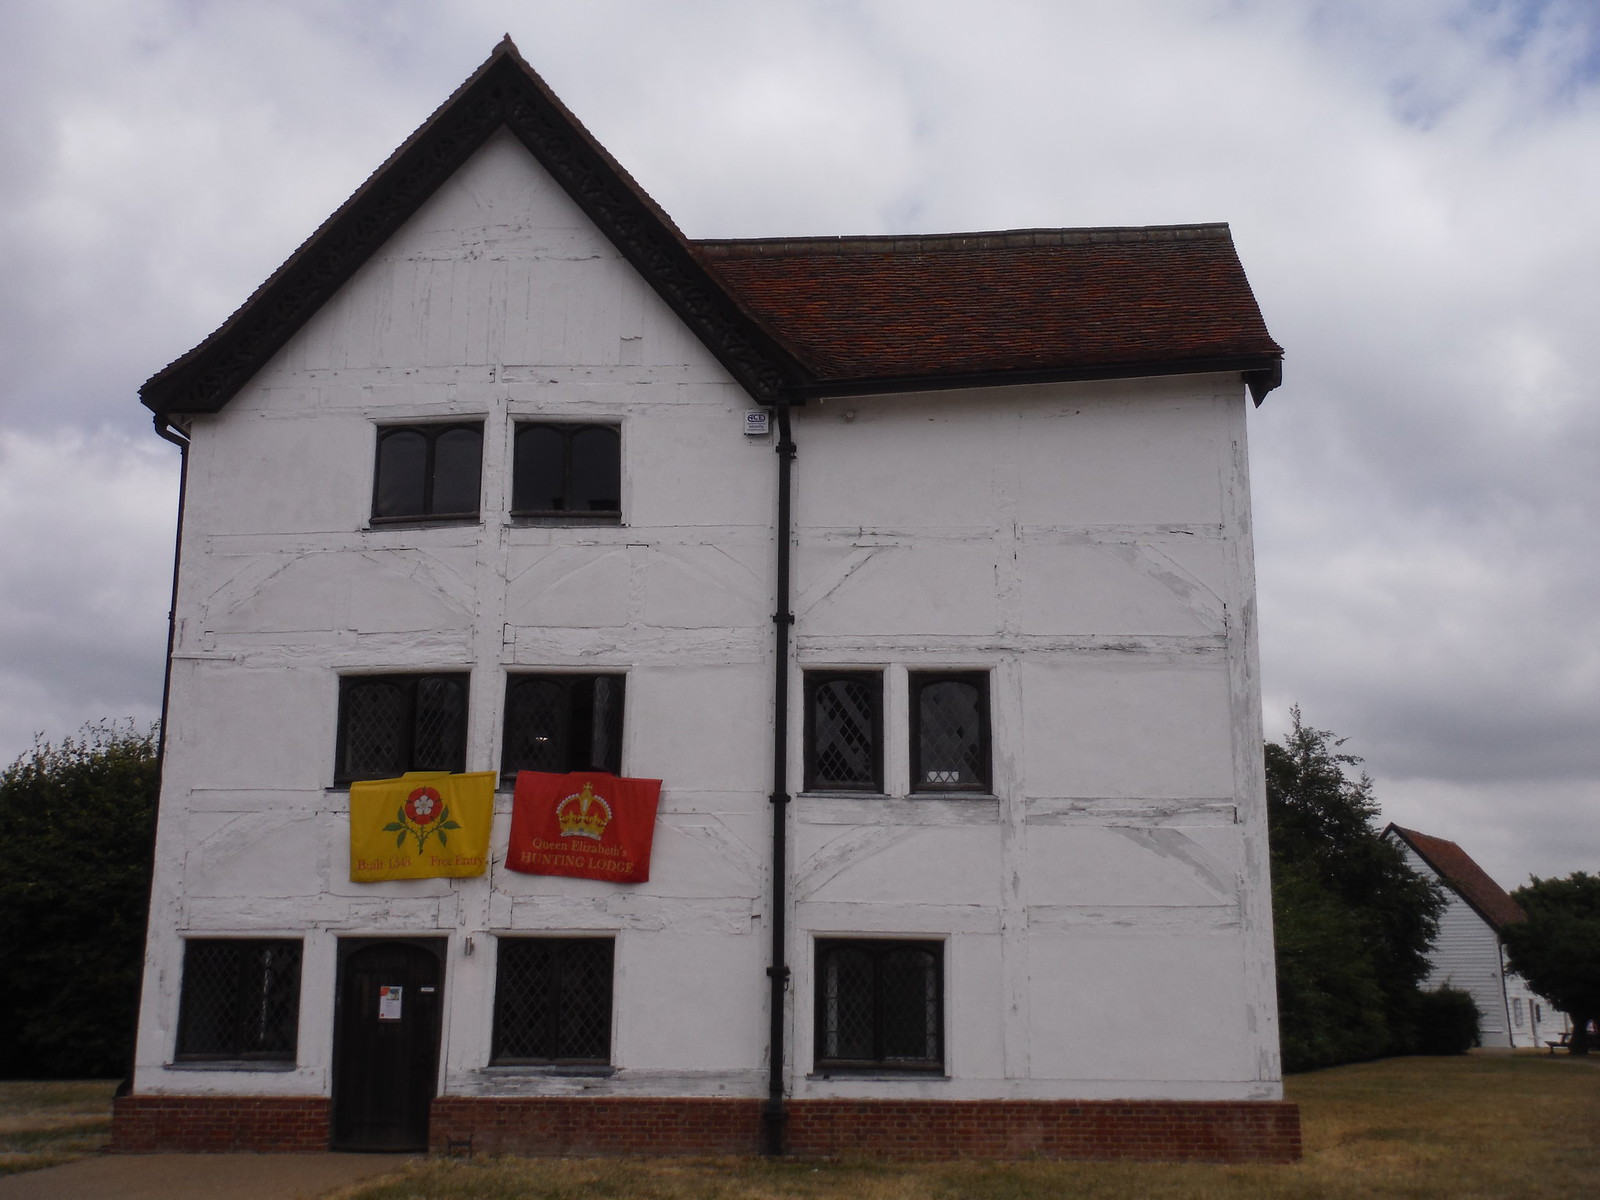 Queen Elizabeth's Hunting Lodge, Chingford SWC Walk 259 - Epping Forest Centenary Walk: Manor Park to Epping